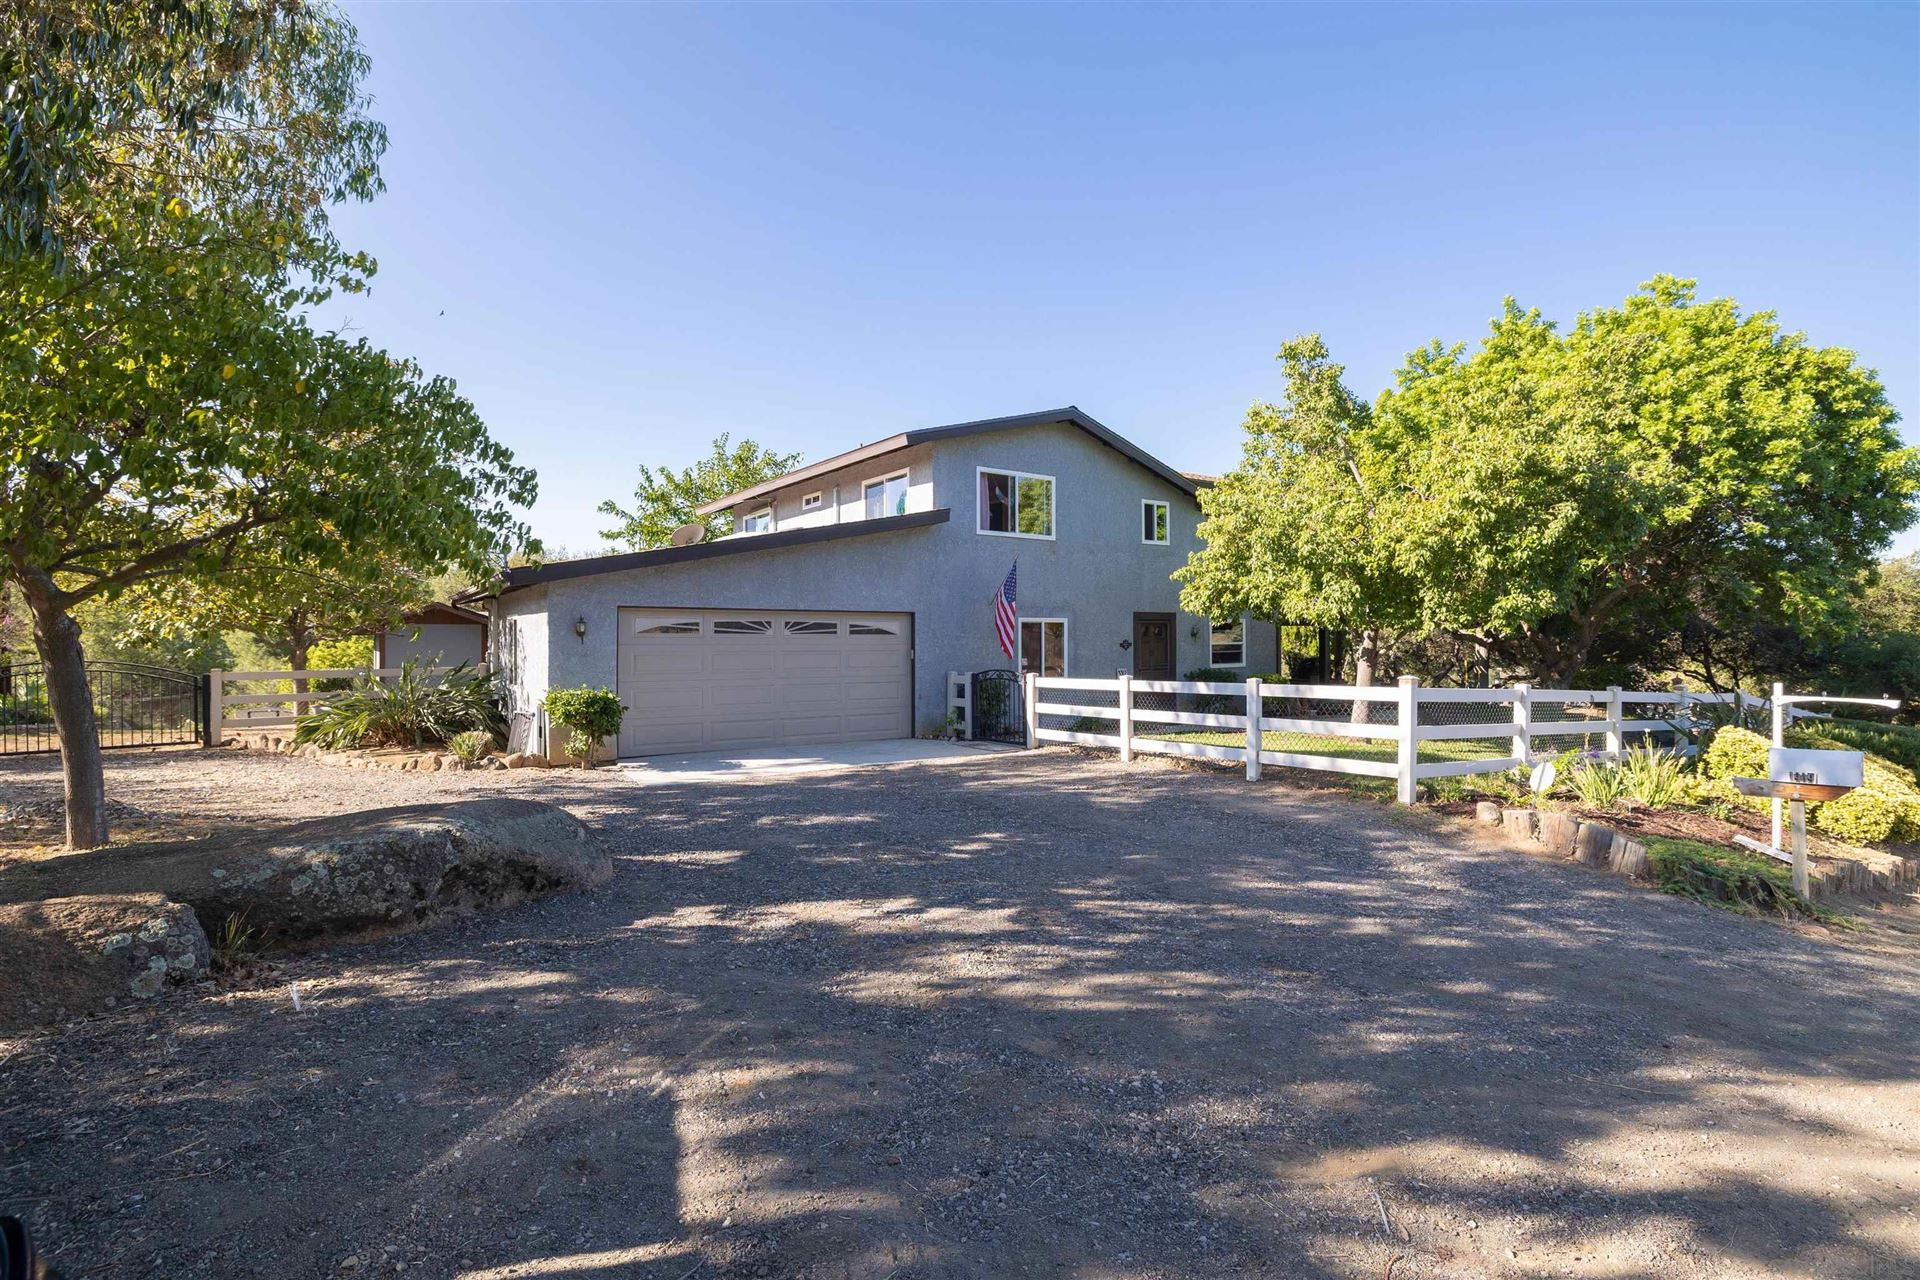 Photo of 19091 Paradise Mountain, Valley Center, CA 92082 (MLS # 210026217)